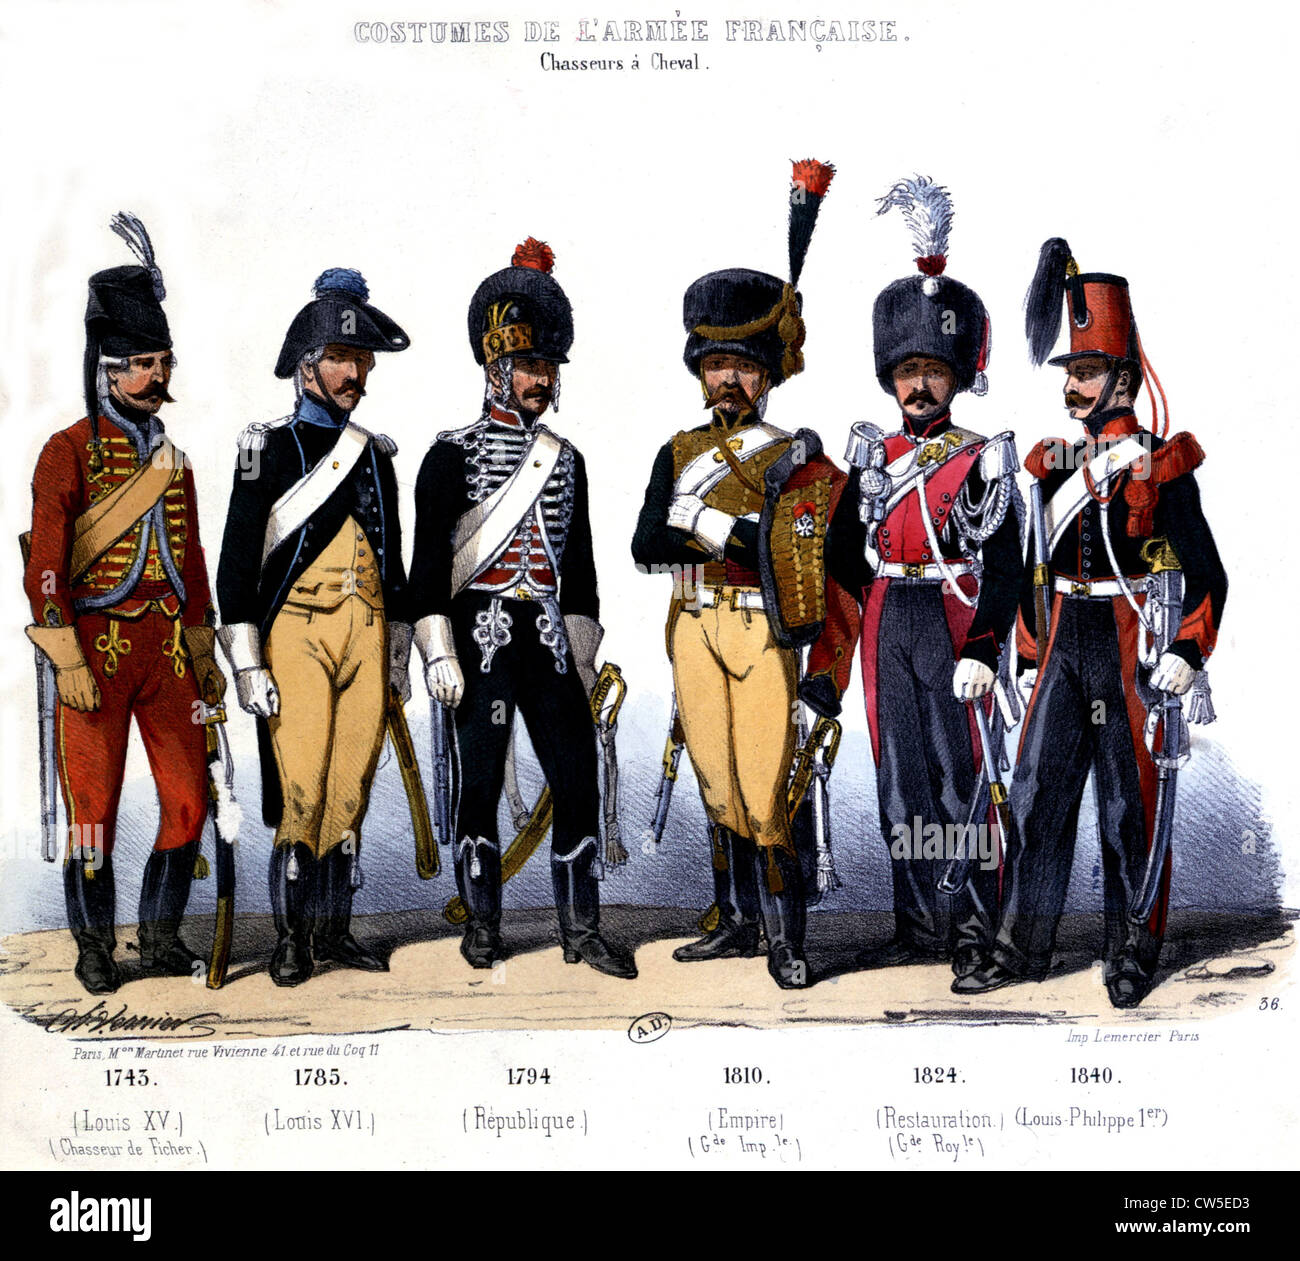 Lithography by Vernier. French army uniforms: cavalrymen from 1745 to 1840 - Stock Image